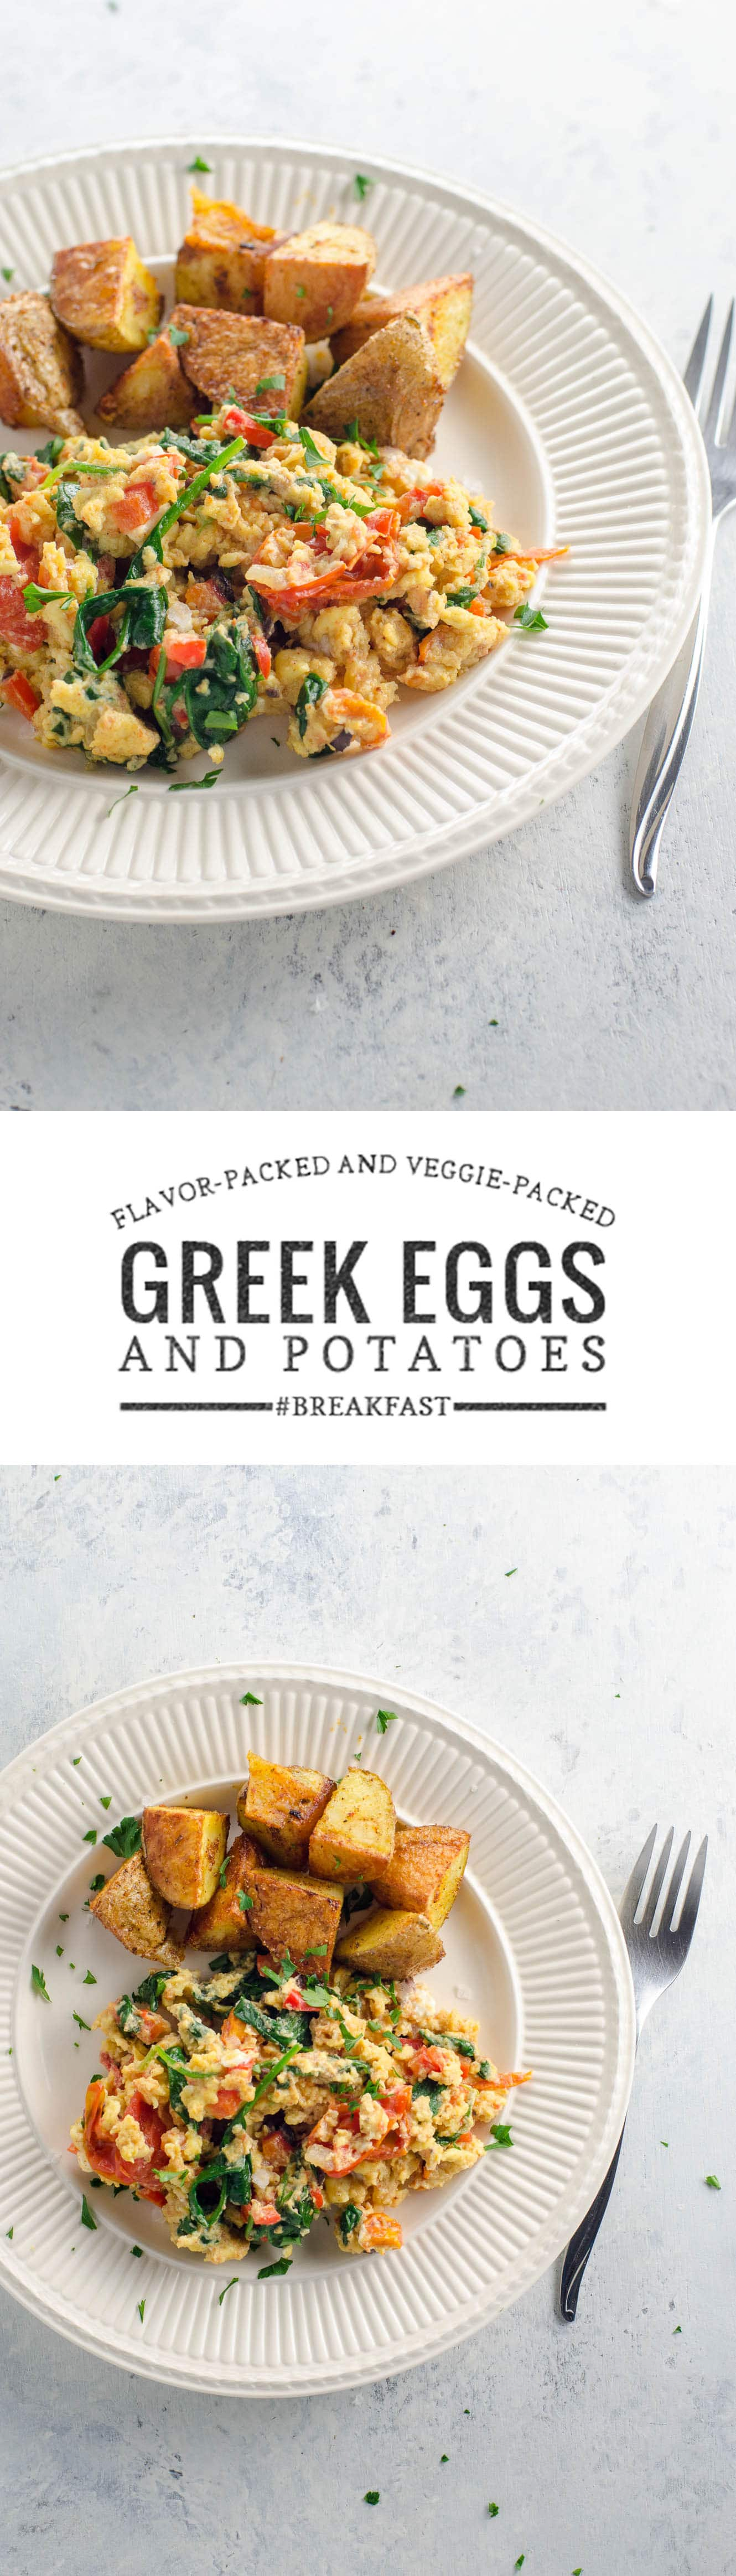 This flavor-packed and veggie-packed breakfast (or brunch! or breakfast for dinner!) of Greek scrambled eggs and potatoes is quick, easy, and satisfying.